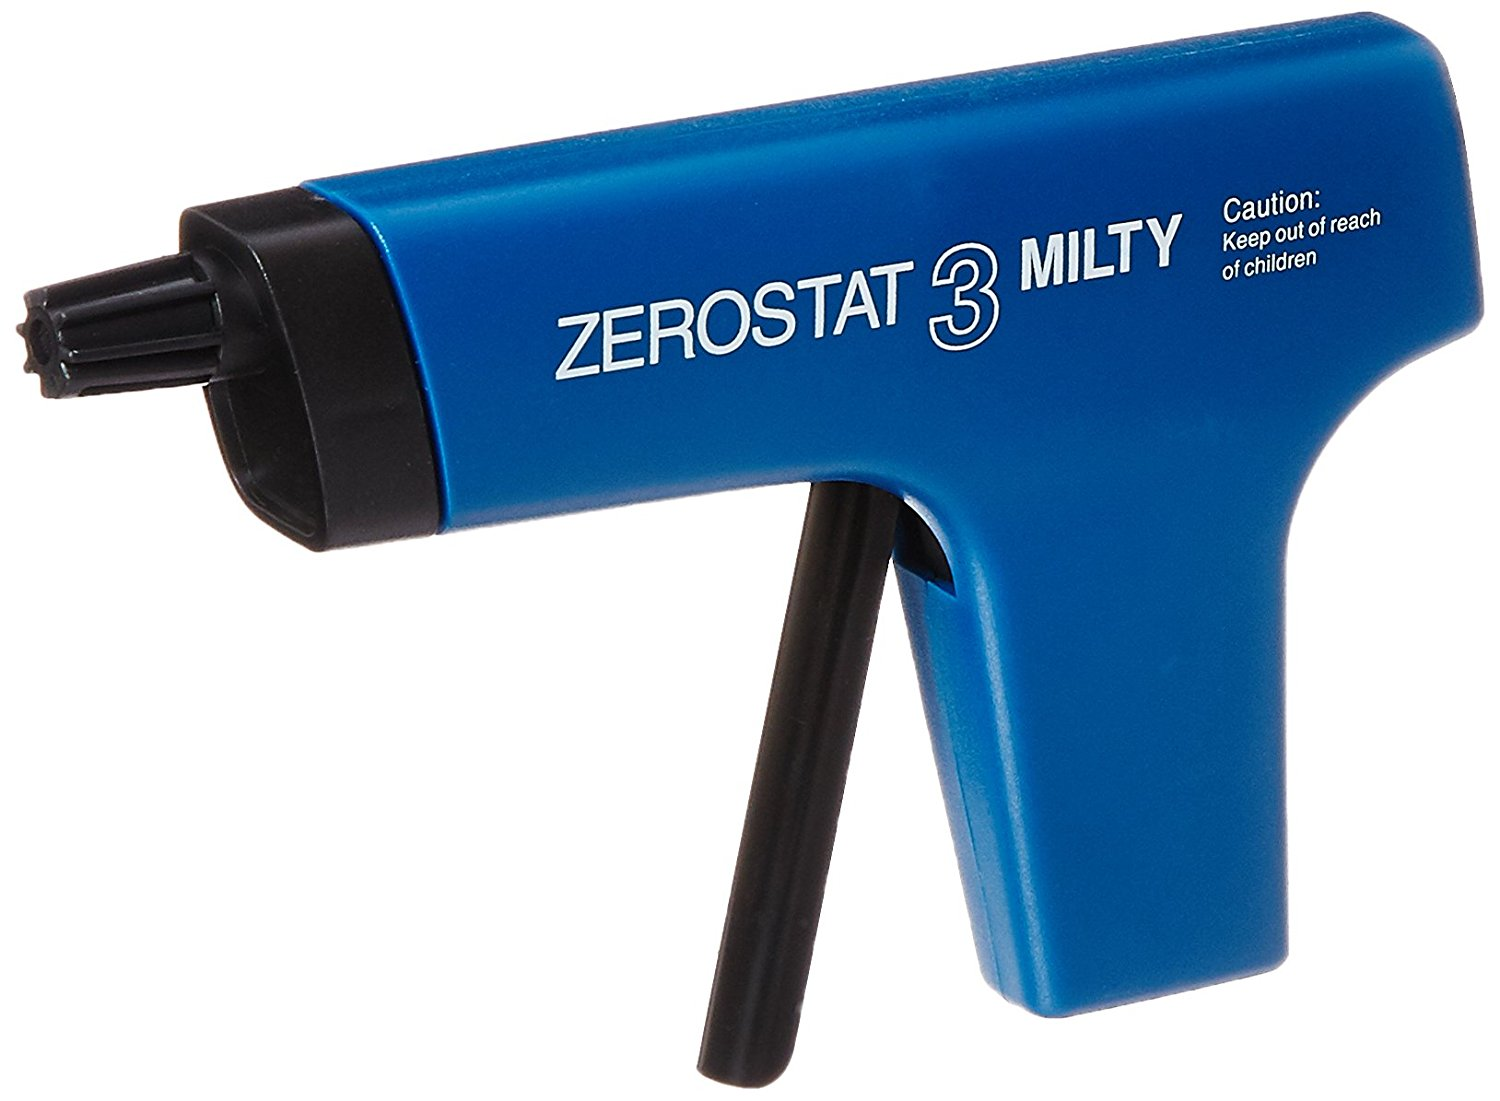 Zerostat 3 Anti-Static Gun, Blue